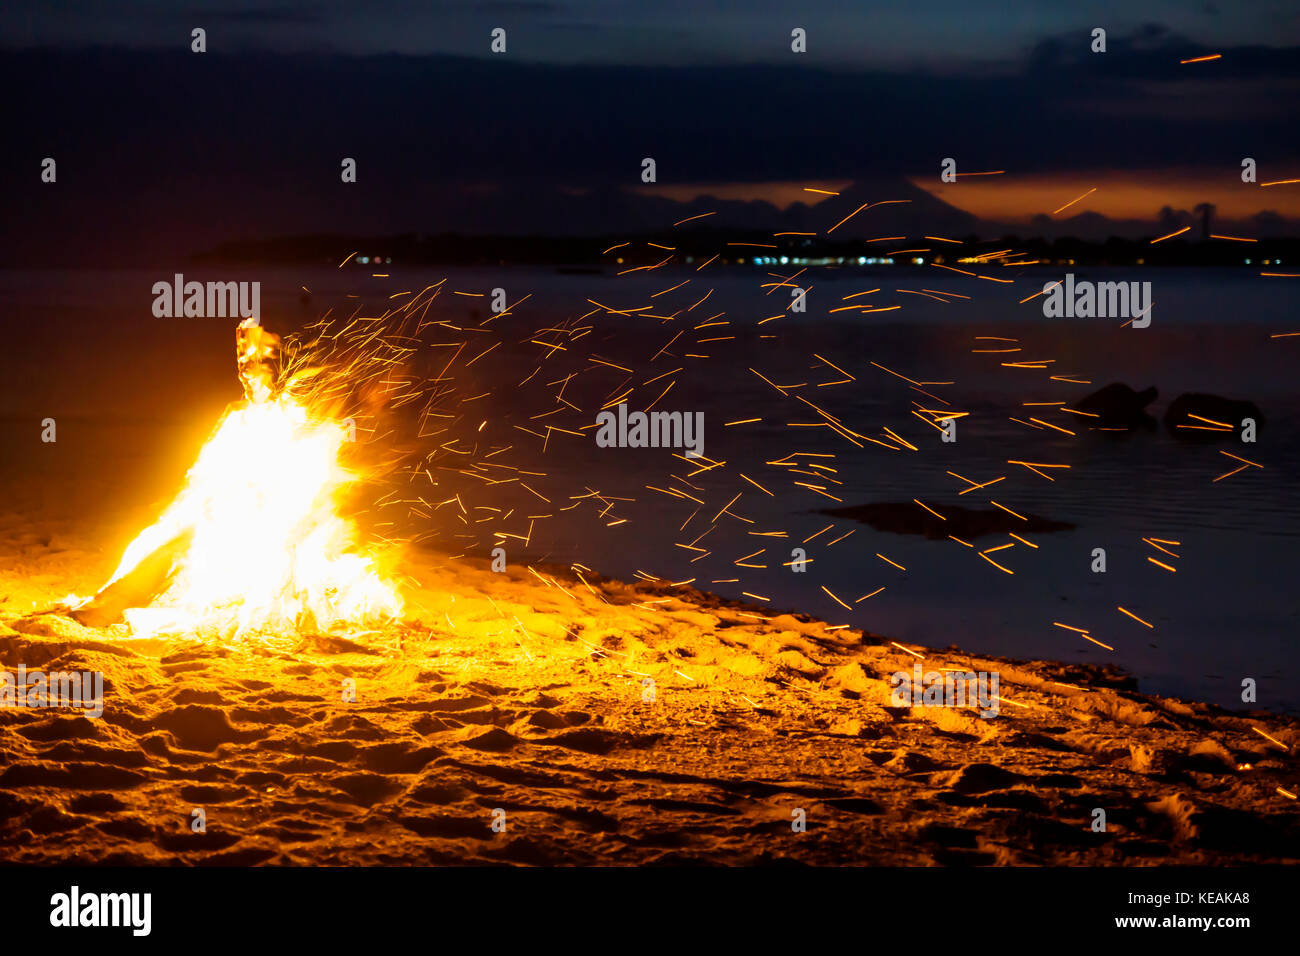 Fyling sparks from bonfire at the beach of Gili Air with volcano Agung of Bali in the background - Stock Image